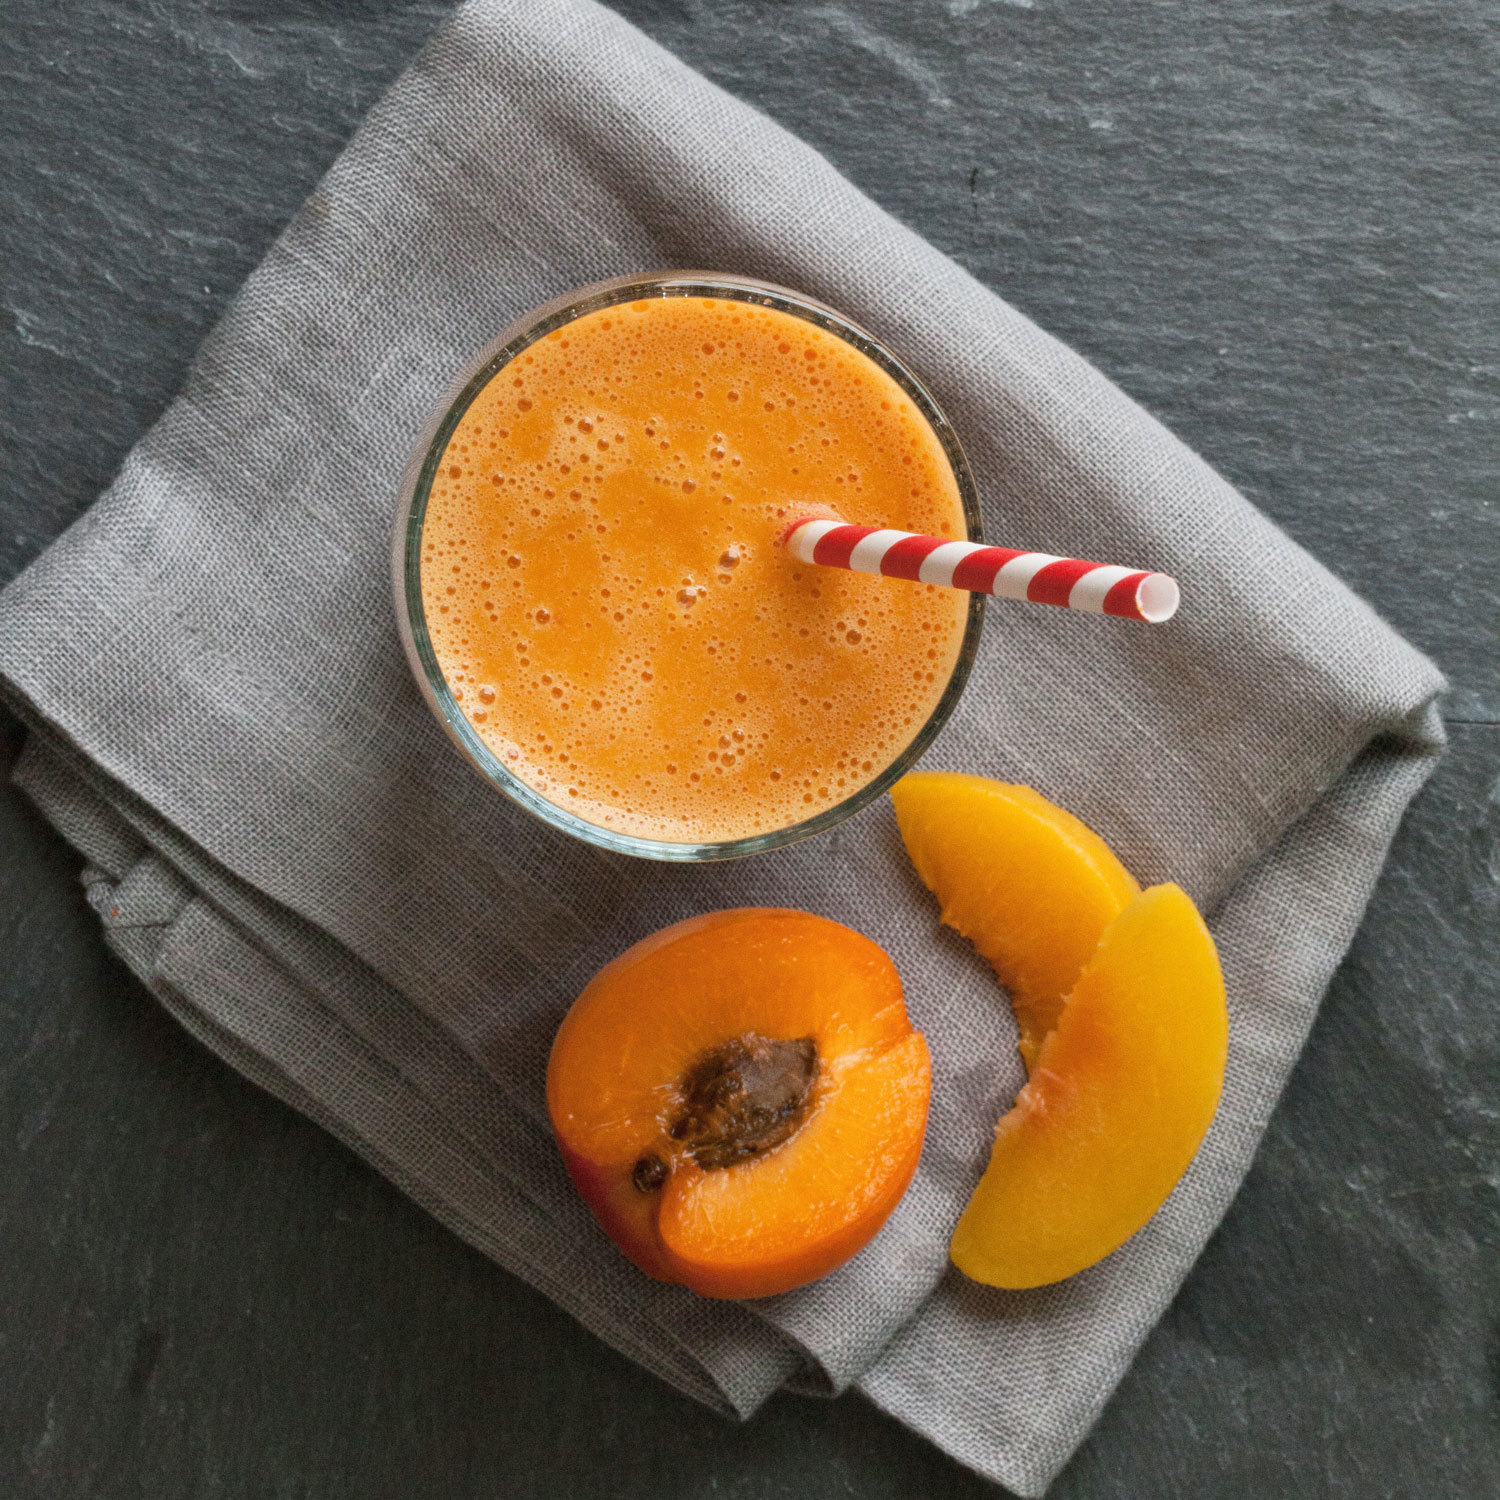 Apricot-Peach Smoothie Trusted Brands